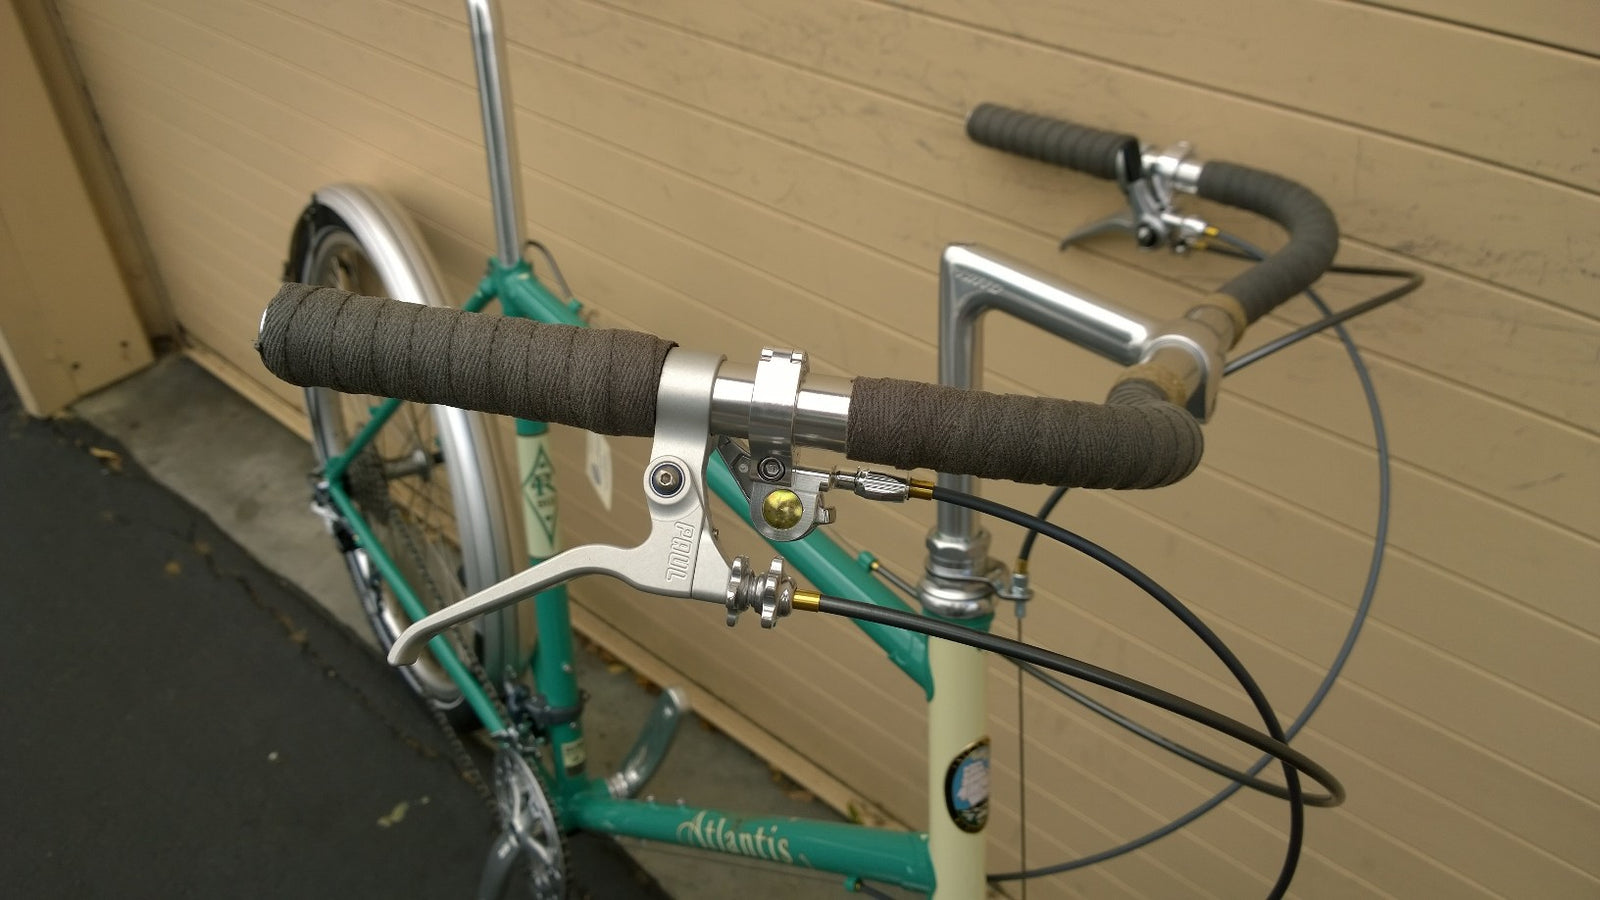 Brake Levers - Mountain - Short pull - Paul Canti Lever